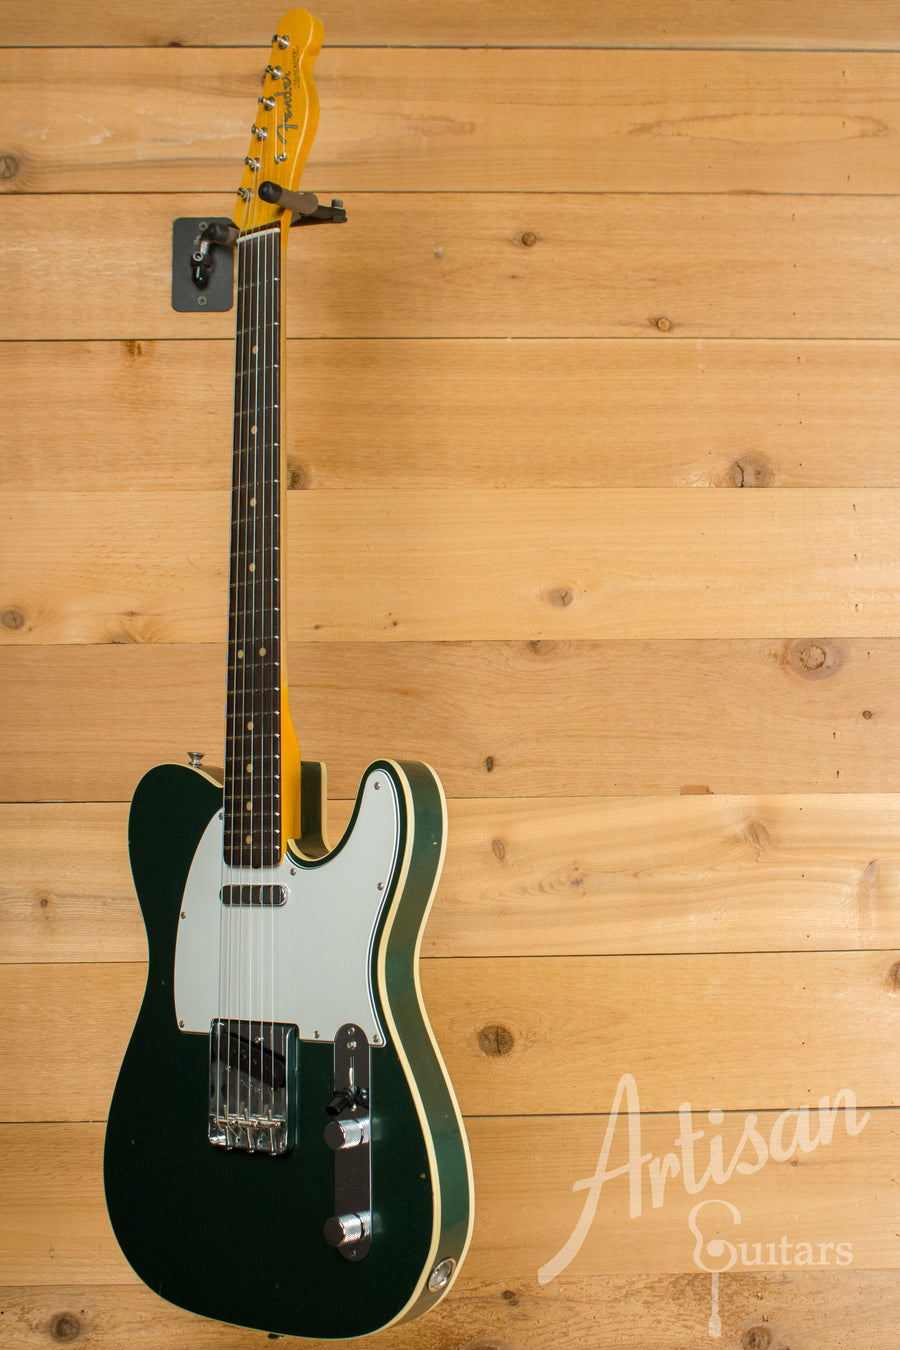 Fender Custom Shop 1963 Journeyman Relic Telecaster Sherwood Green Finish Pre-Owned 2017 ID-11674